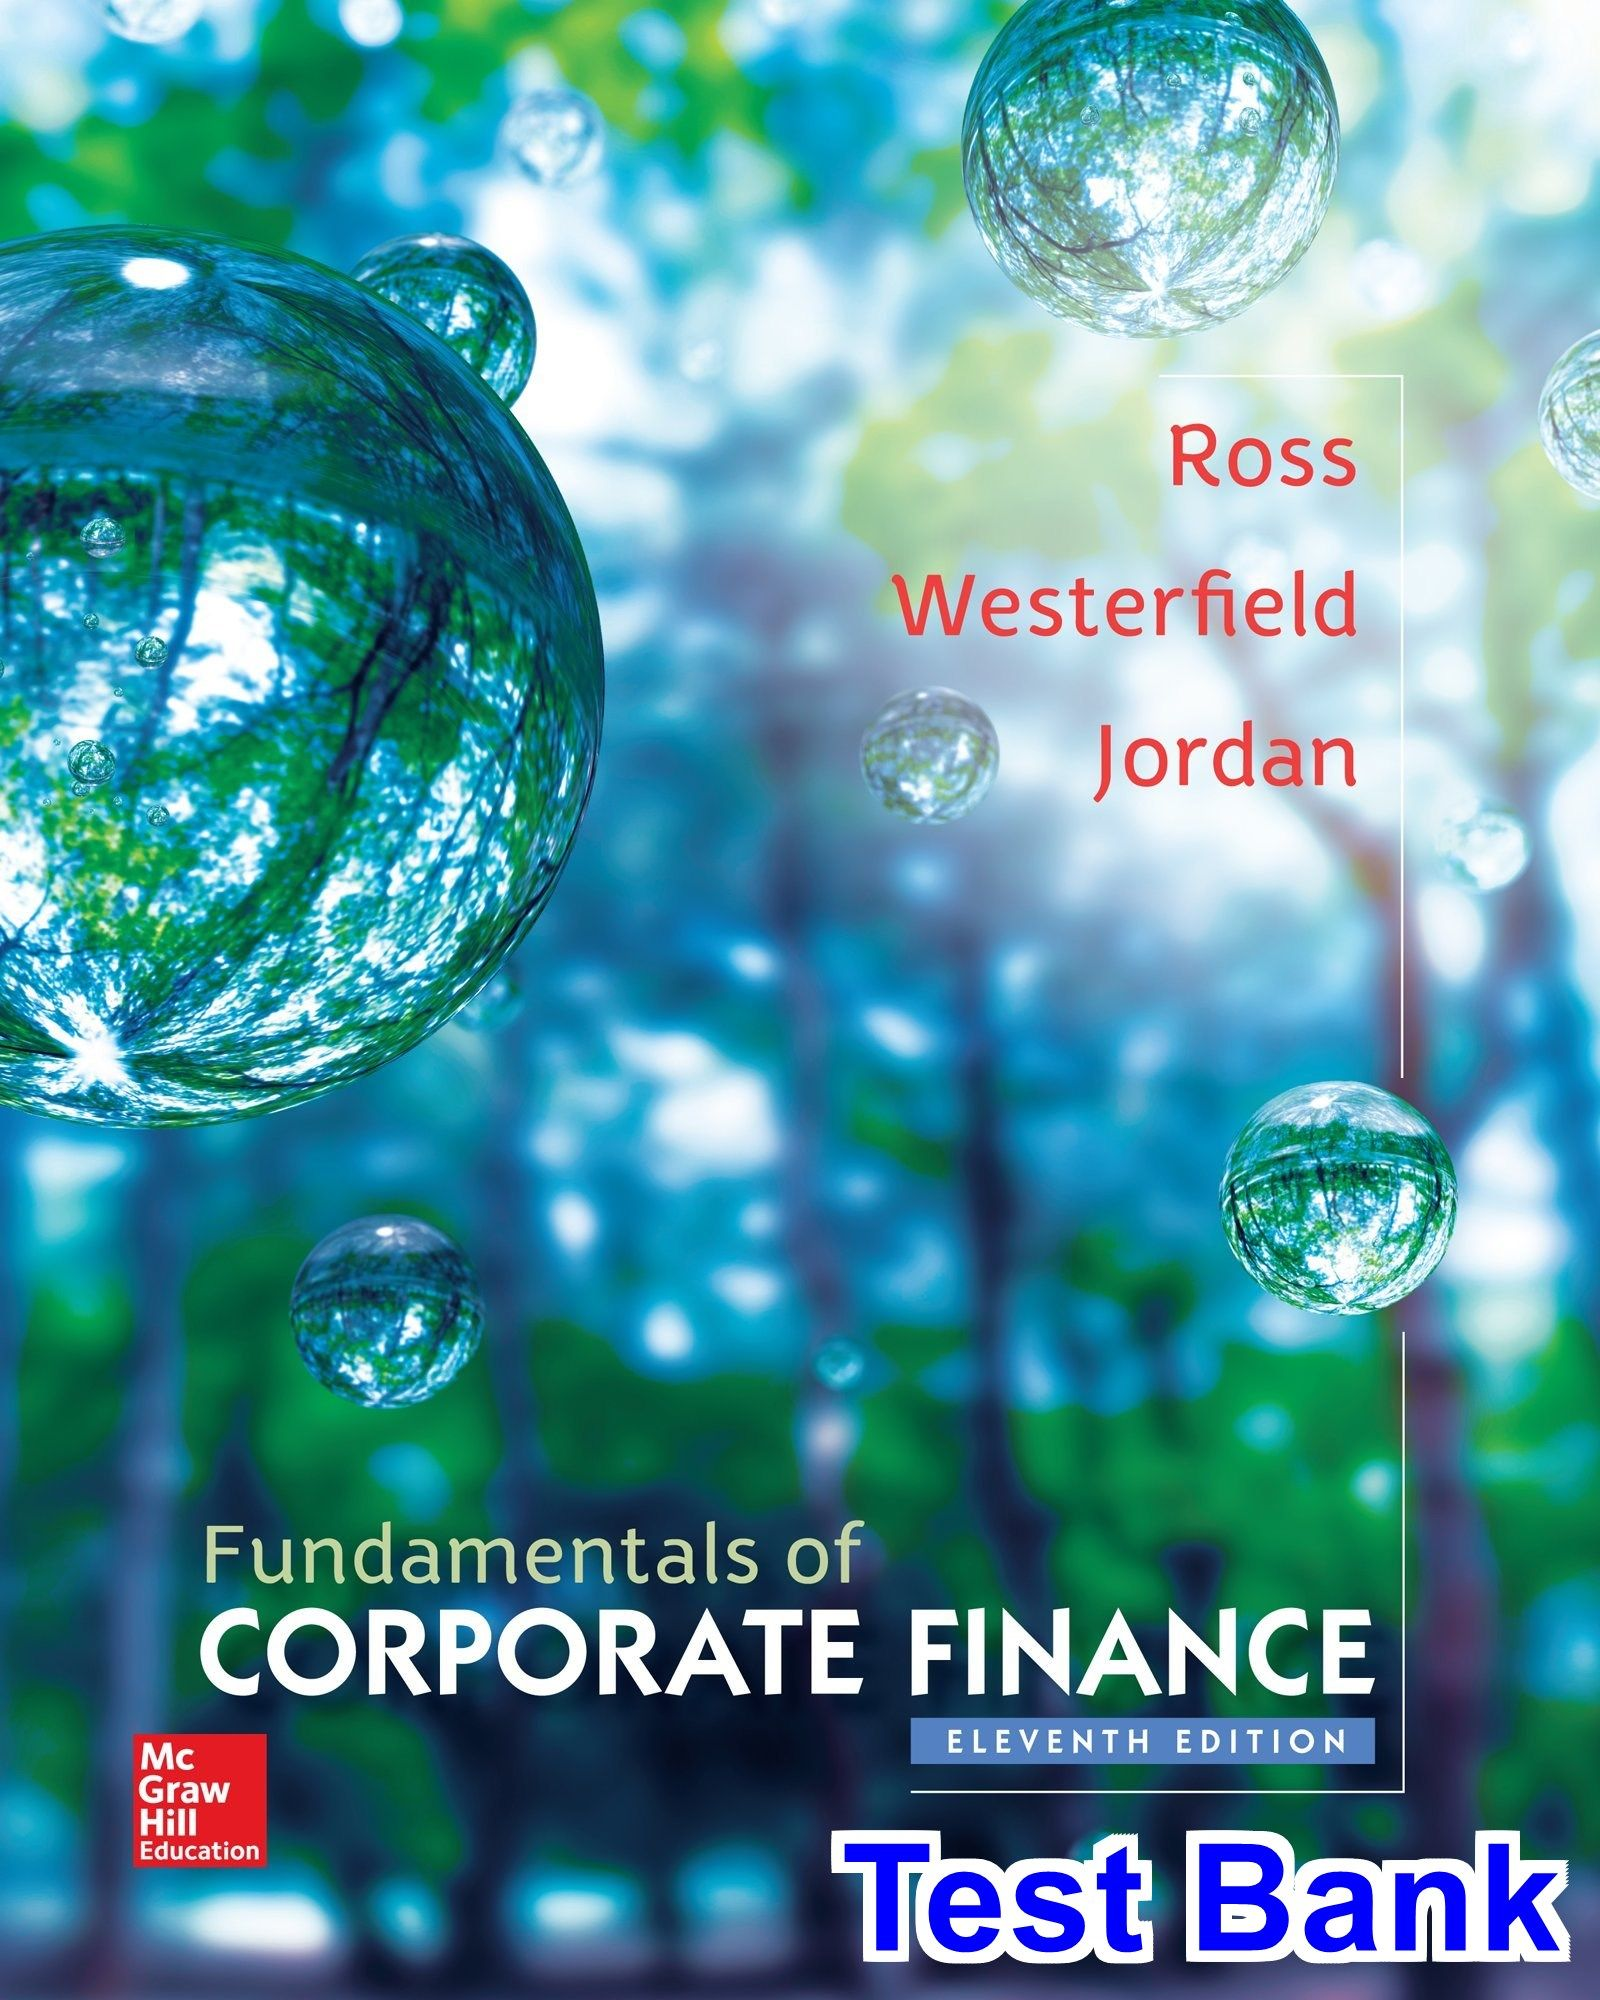 Fundamentals of Corporate Finance 11th Edition Ross Test Bank - Test ...